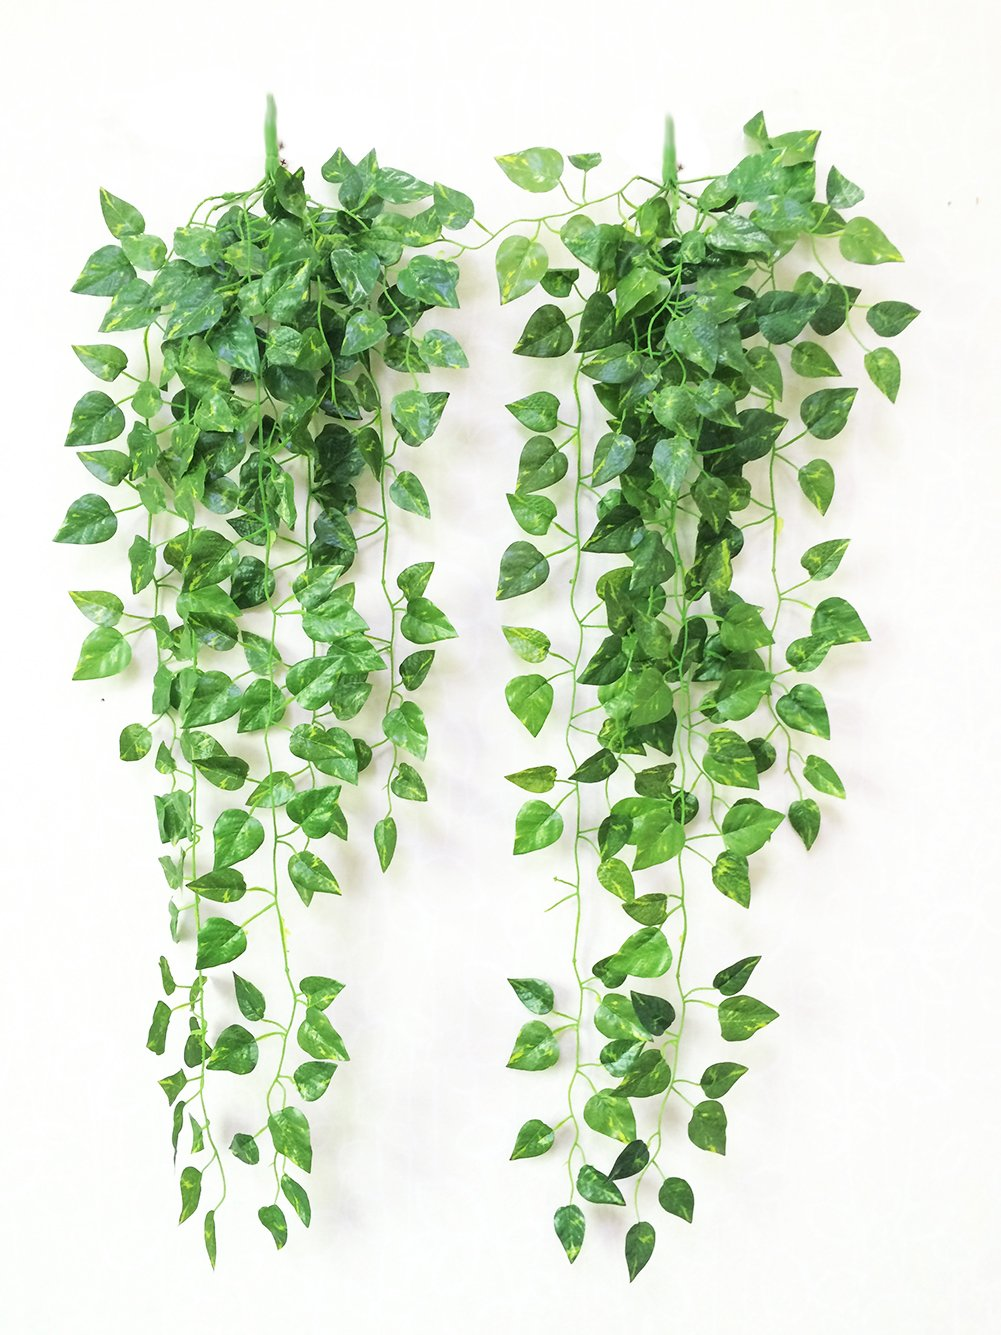 Yatim 90 CM Money Ivy Vine Artificial Plants Greeny Chain Wall Hanging Leaves Home Room Garden Wedding Garland Outside Decoration Pack of 2